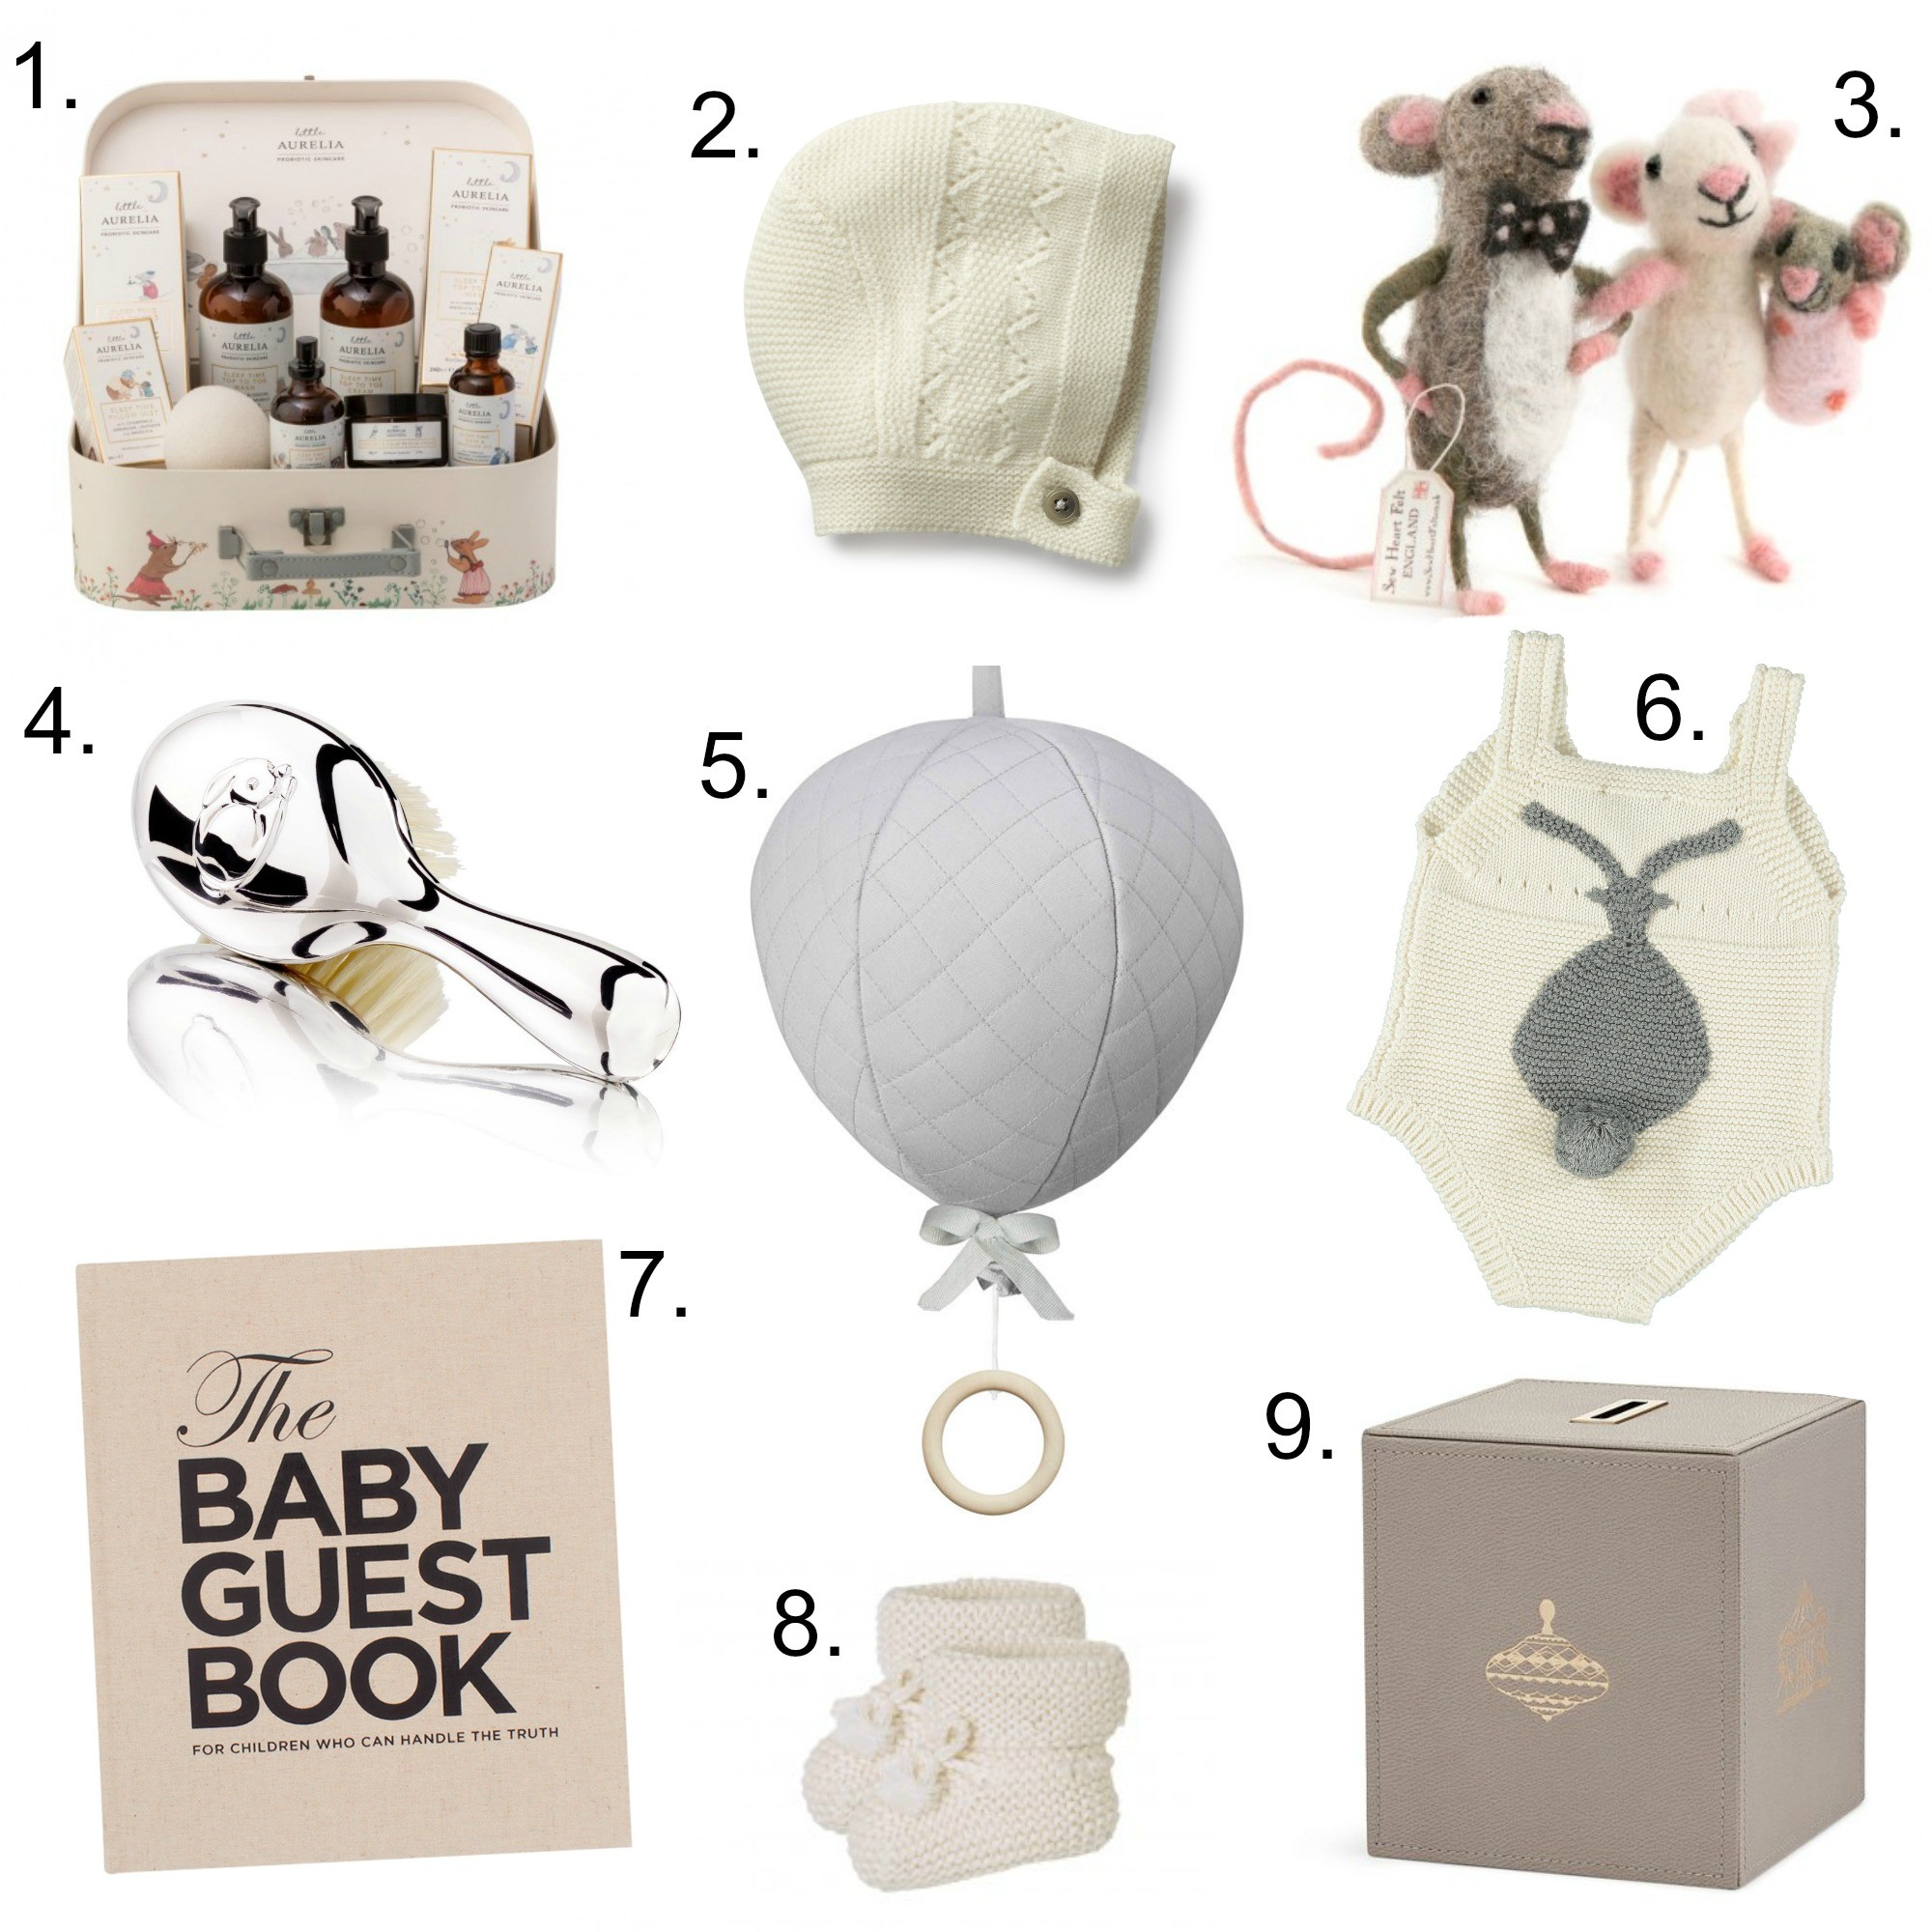 Royal Delivery: fit for a prince or princess